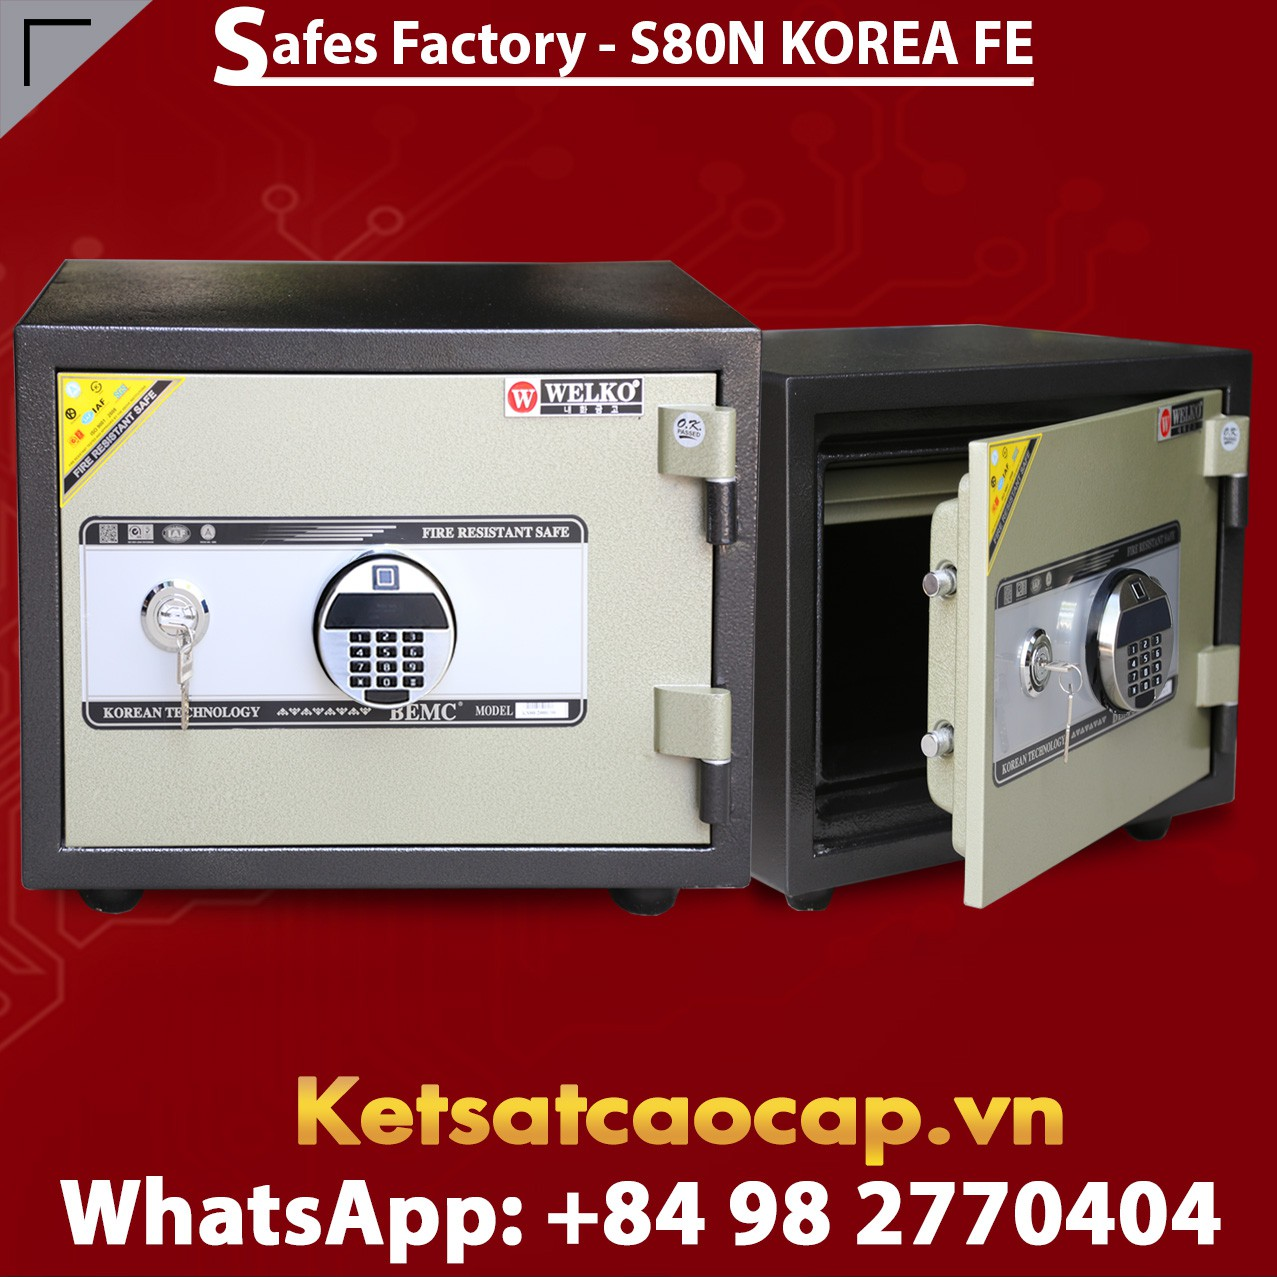 BURGLARY FIRE SAFE S80N FE